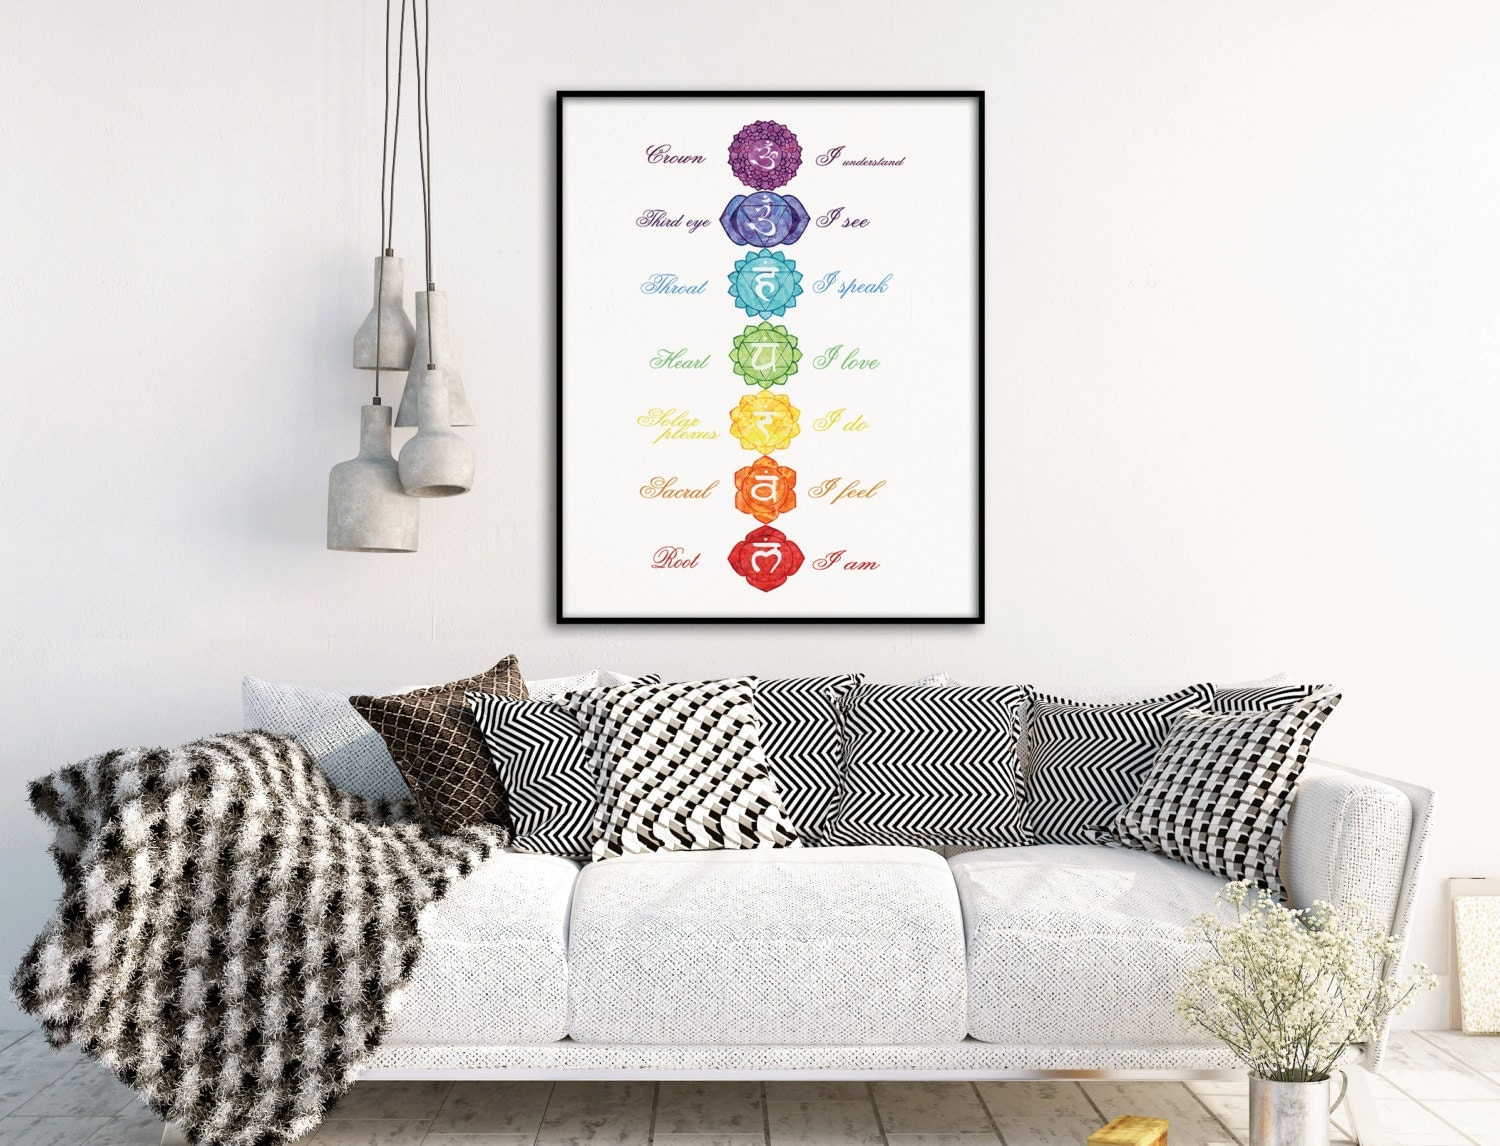 Meditation Decor Mesmerizing Chakra Meditation Wall Art Chakra Print Yoga Studio Decor 2017